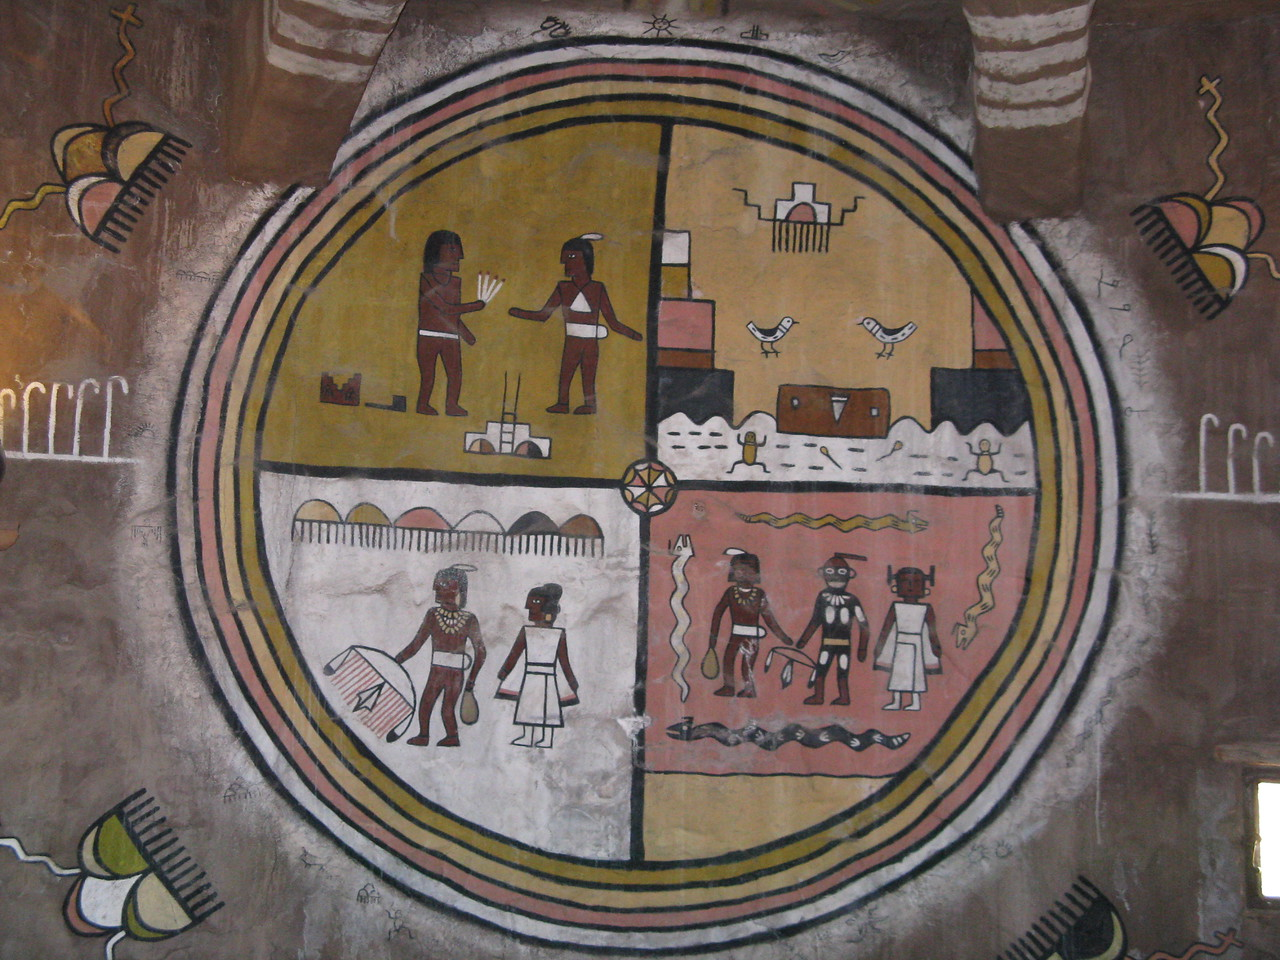 On the inside wall of the Watchtower, this Navajo or Hopi painting dominated the room.